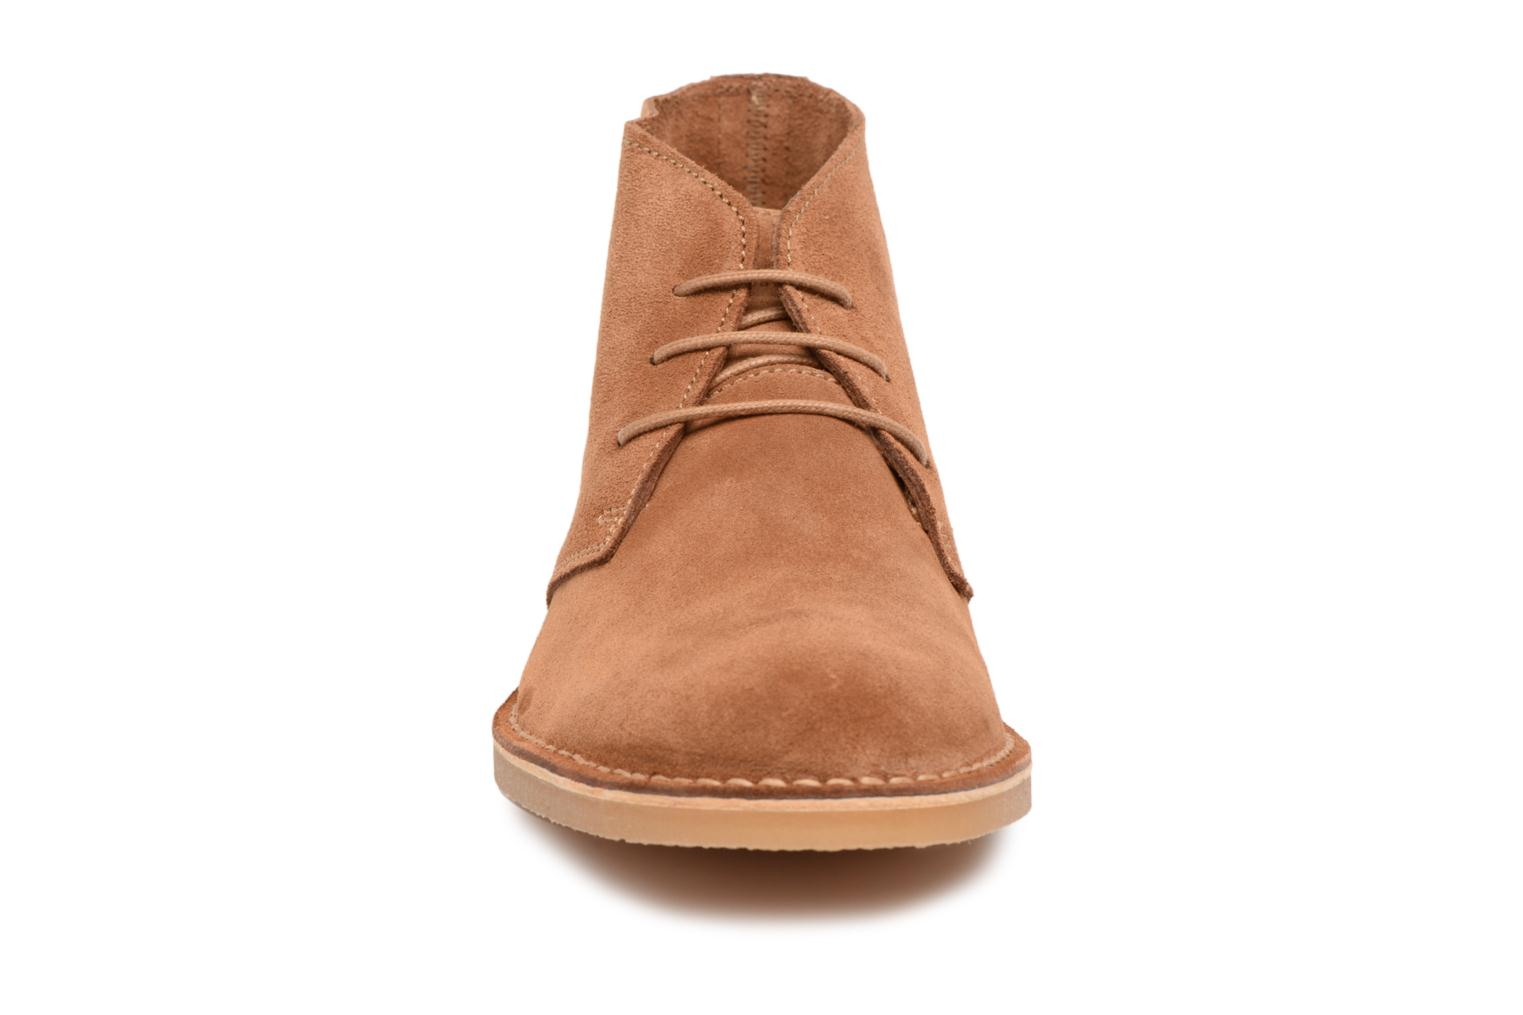 Selected Cognac Suede 2 Boot Light Homme Royce xO7Pwqa86